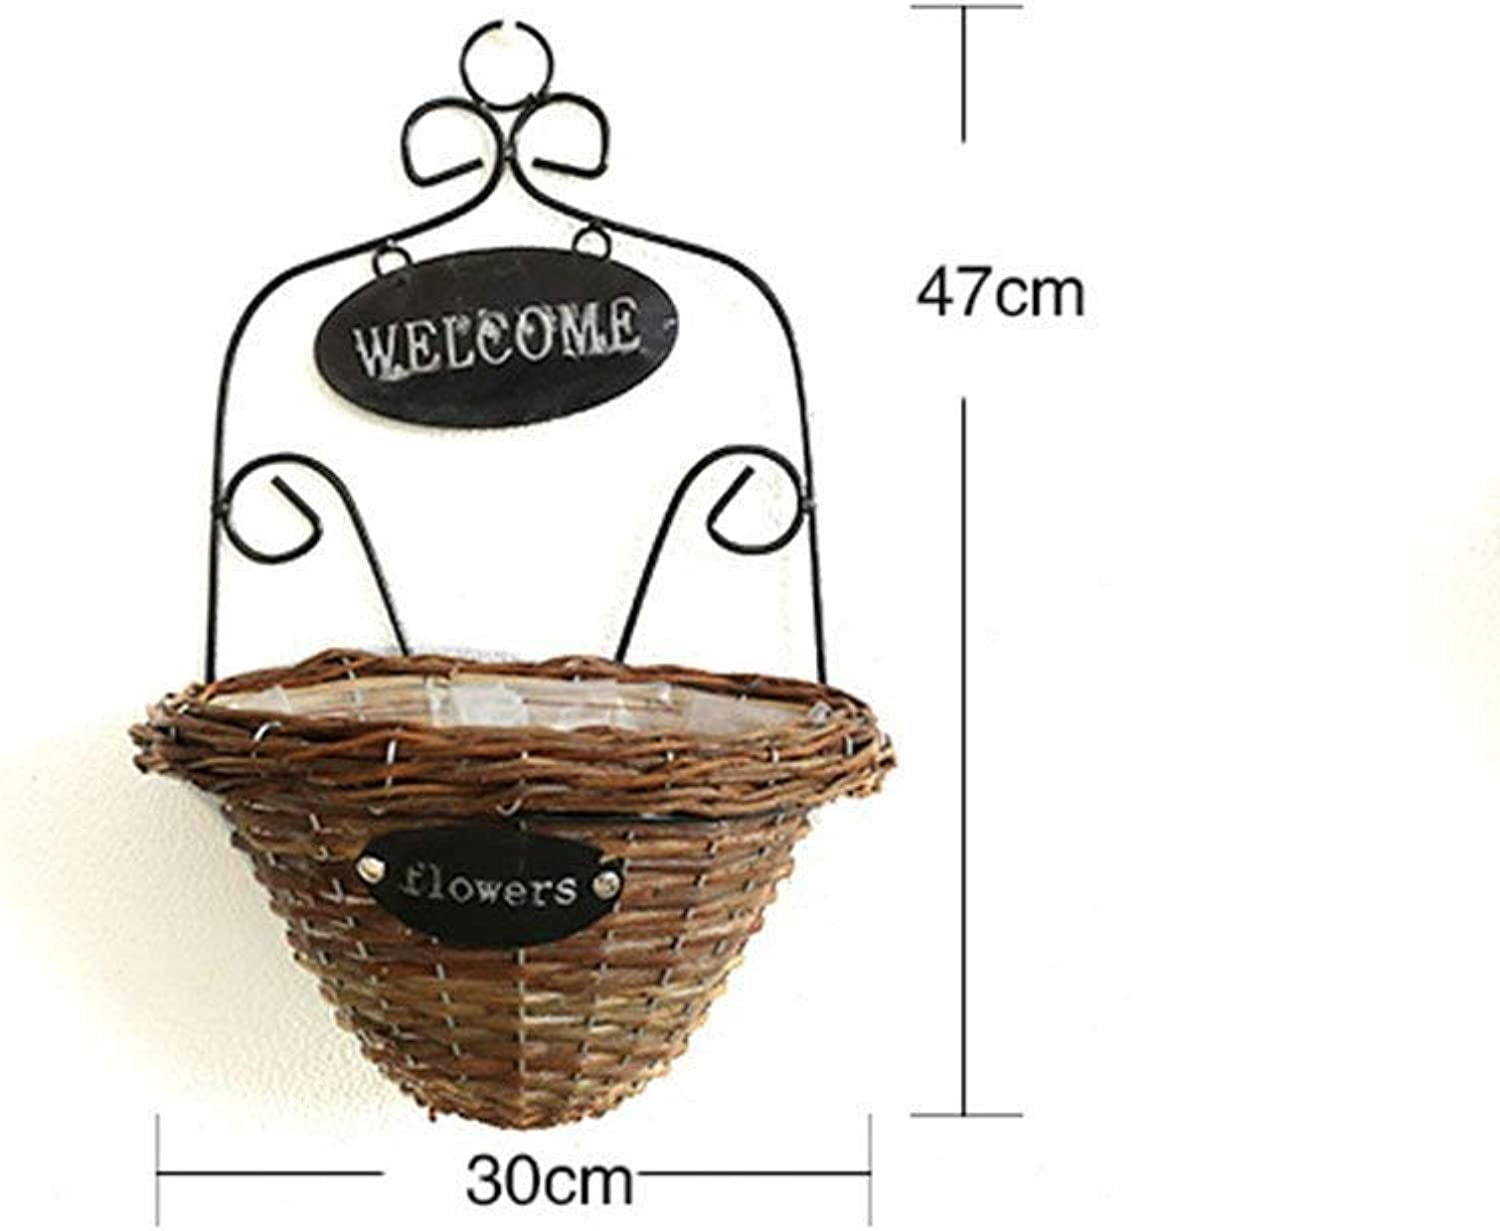 CWJ Vintage Wall Artwork Pastoral Village Willow Handcrafted Wall Ironwork Flower Baskets Home Shopcreative Hanging Ornament